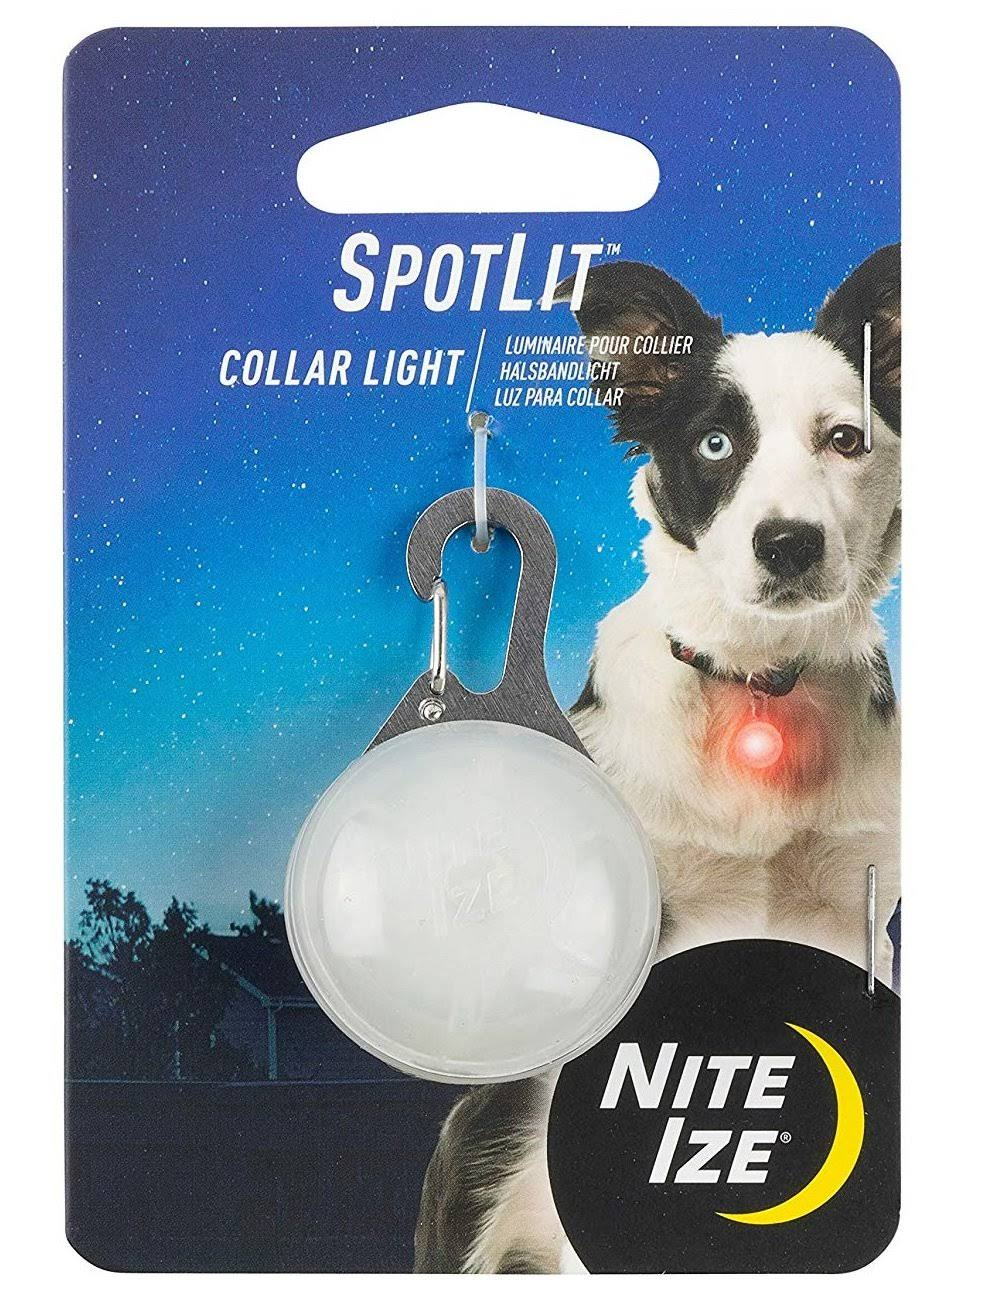 Nite Ize Spotlit Collar Light Red